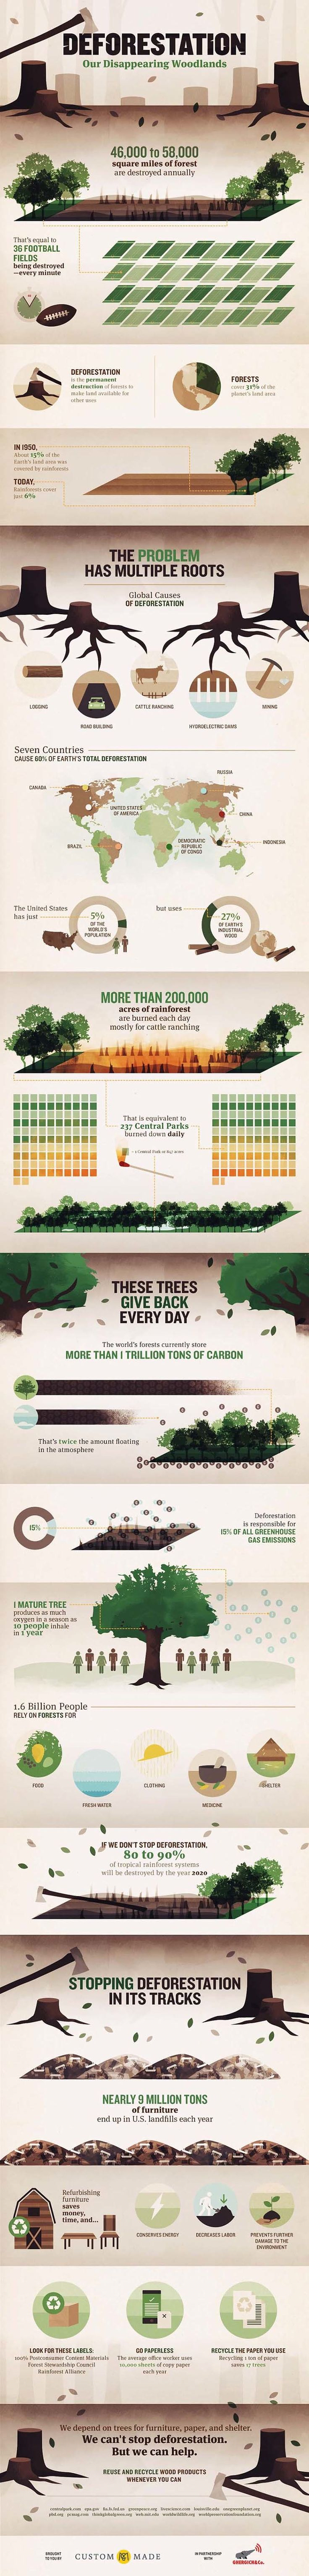 You've Heard About This Problem With Our Trees, But Do You Really Know How Big It Is?